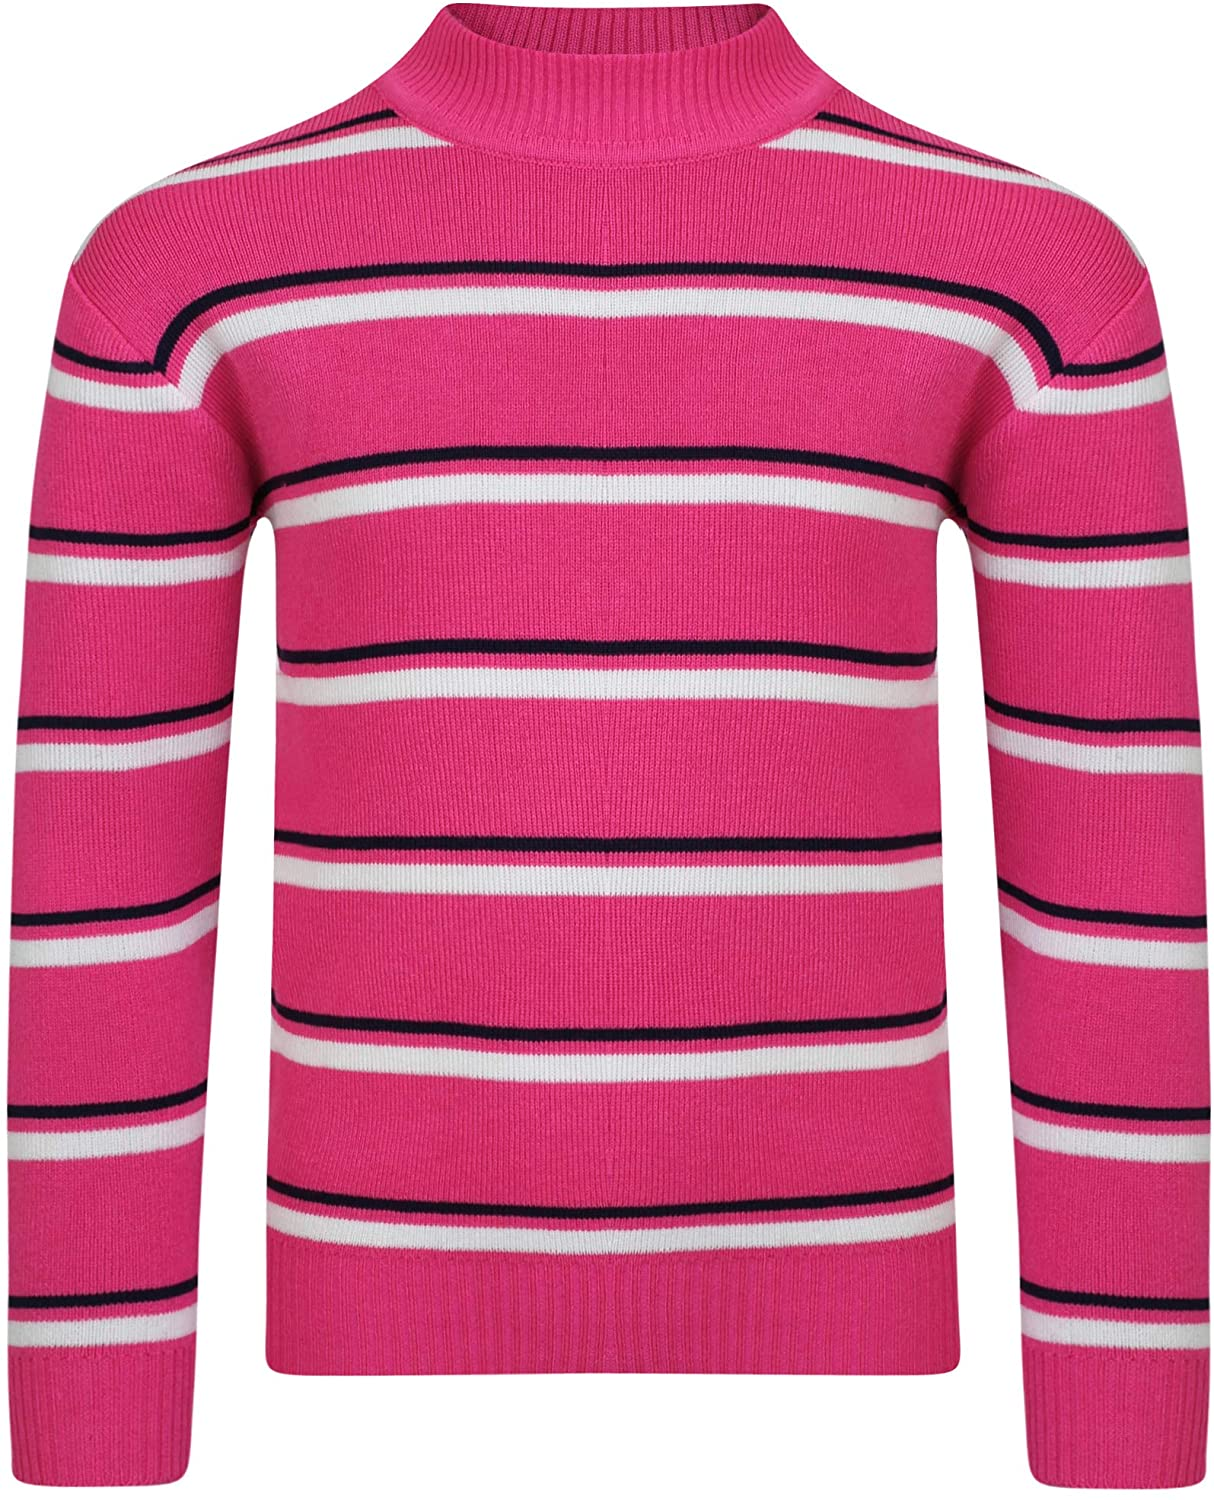 LOTMART Girls Pullover Striped Knitted Jumper Kids Long Sleeve Sweater Knit Top